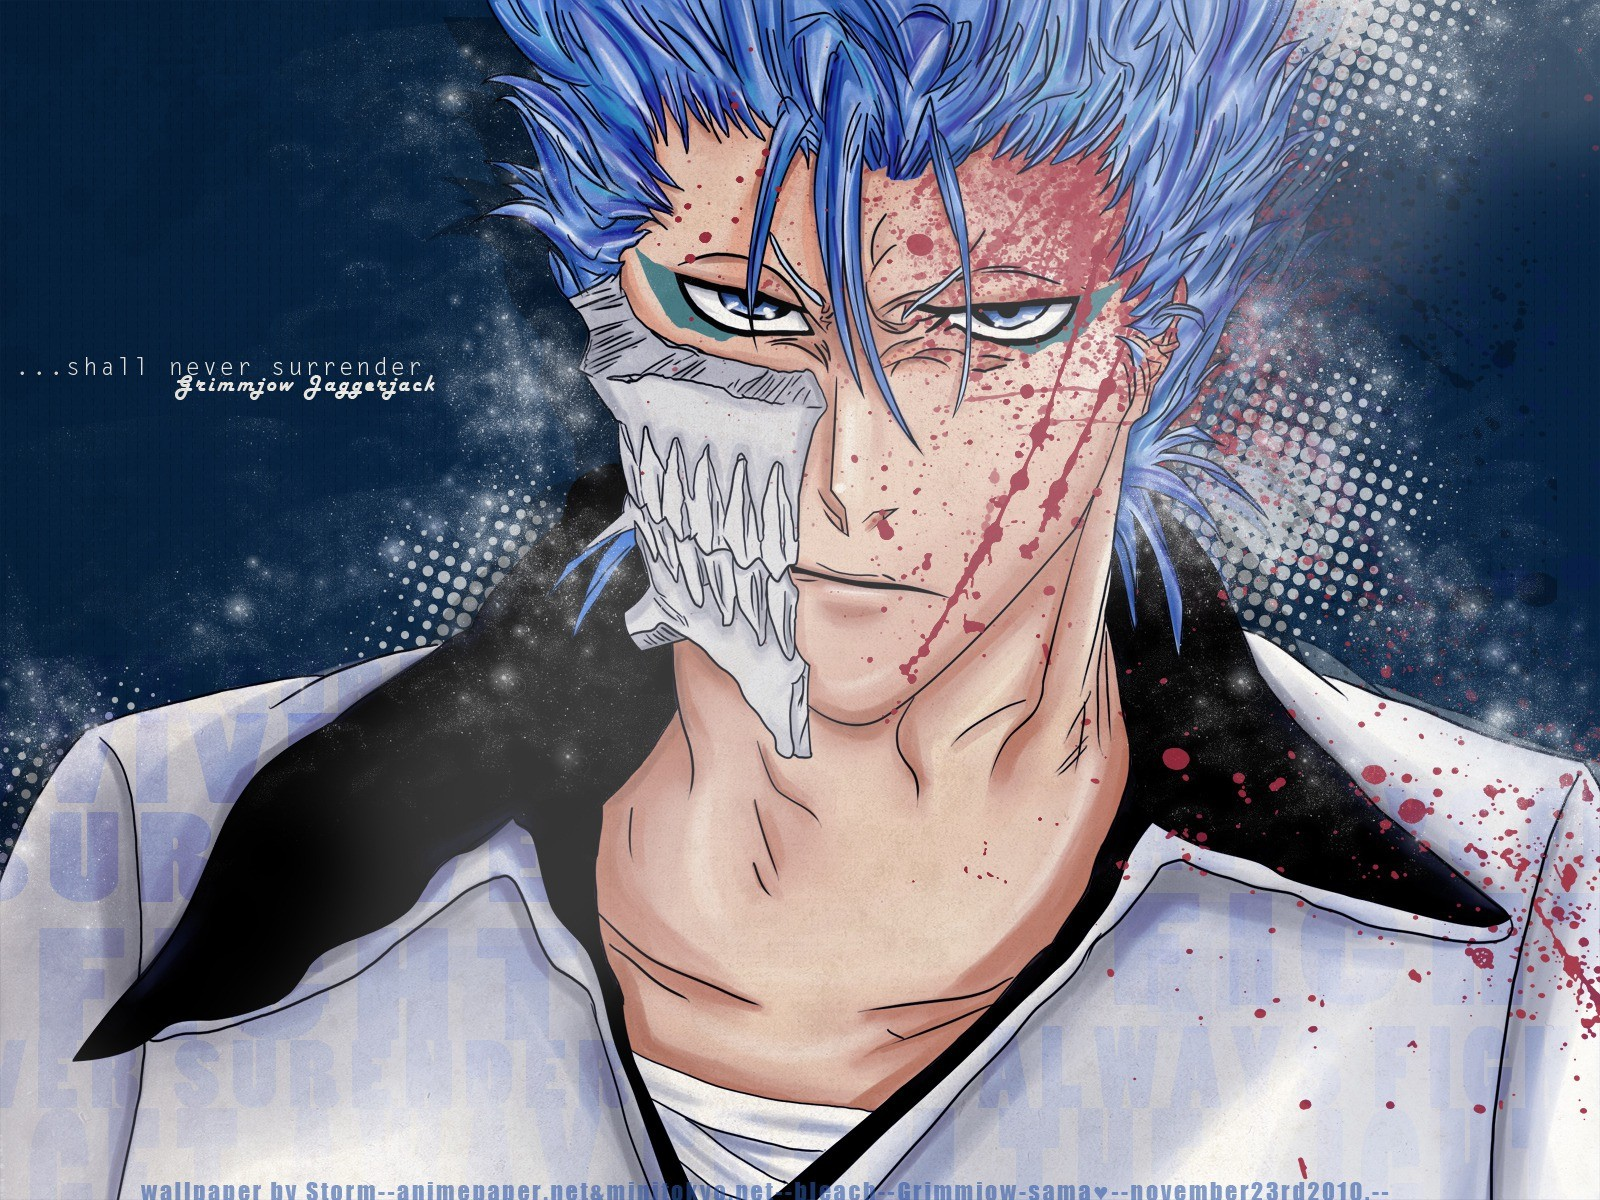 can't be tamed grimmjow jaegerjaquez love storyfullmoonwolf on